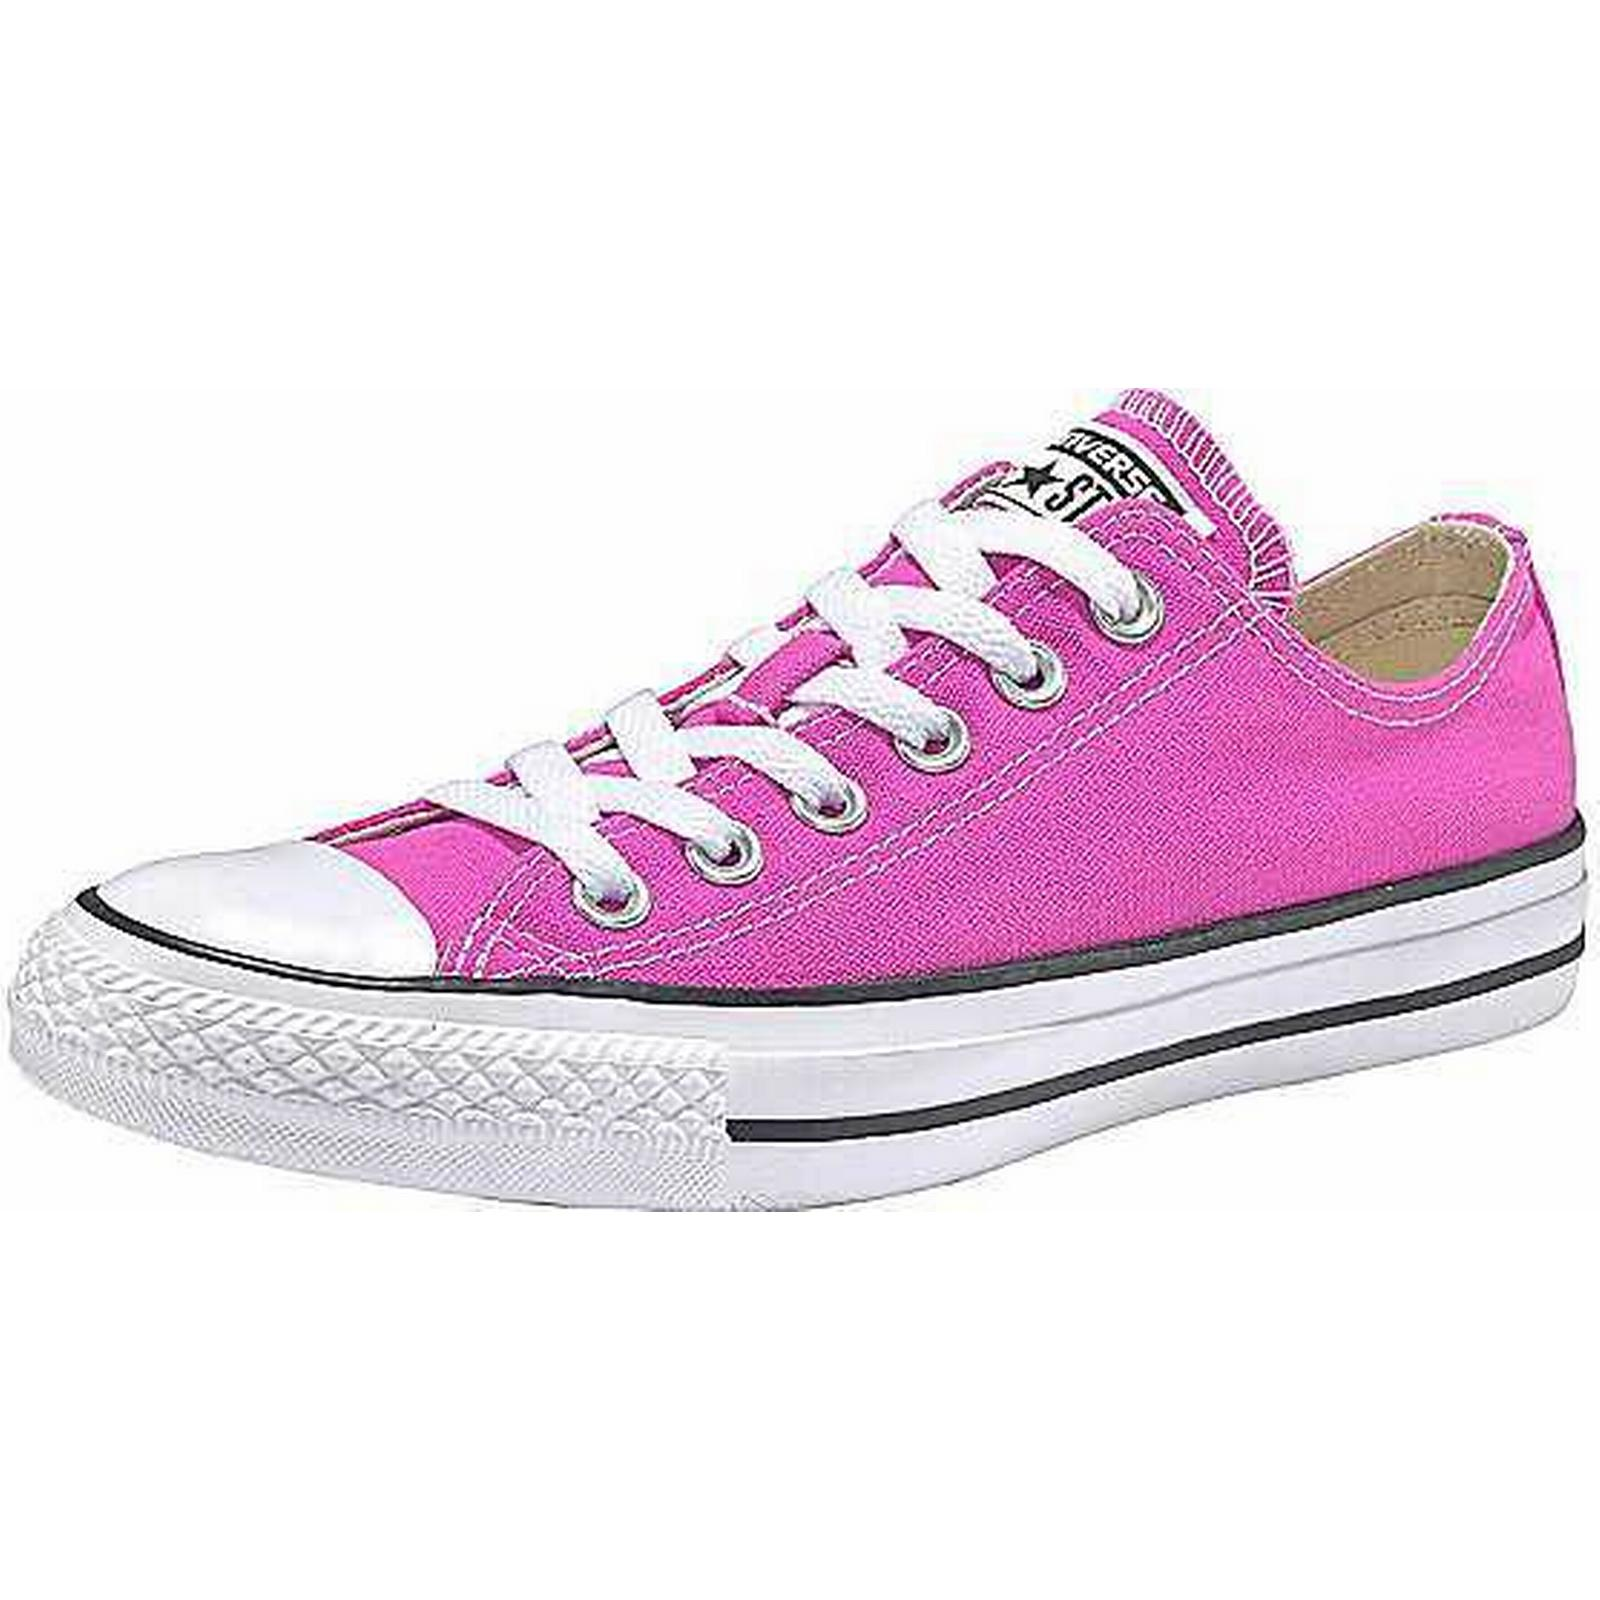 Converse Chuck Ox Taylor All Star Ox Chuck by Converse/Gentlemen/Ladies/Direct Management bd3628